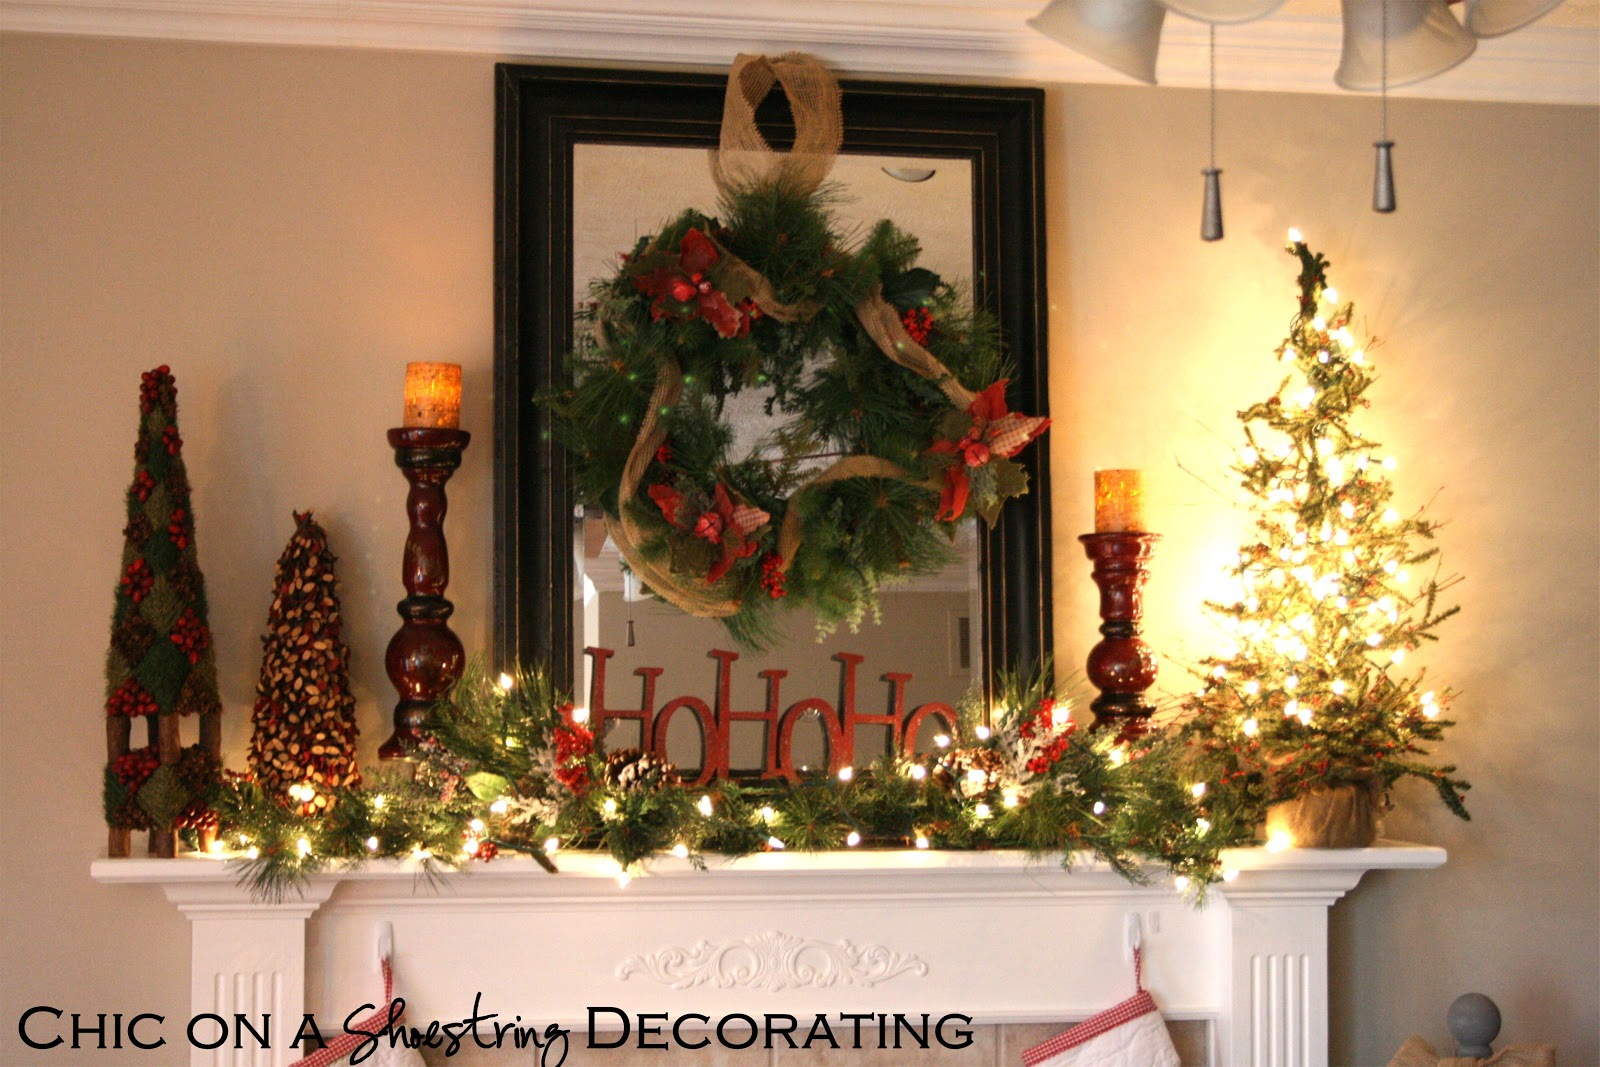 Nov 19,  · How to Decorate Your Mantel for Christmas. In this Article: Creating a Simple and Refined Look Embellishing Your Mantel with Evergreen Cuttings Upcycling to Decorate Your Mantel Community Q&A 10 References. The fireplace is an iconic part of the Christmas holiday narmaformcap.tk: K.